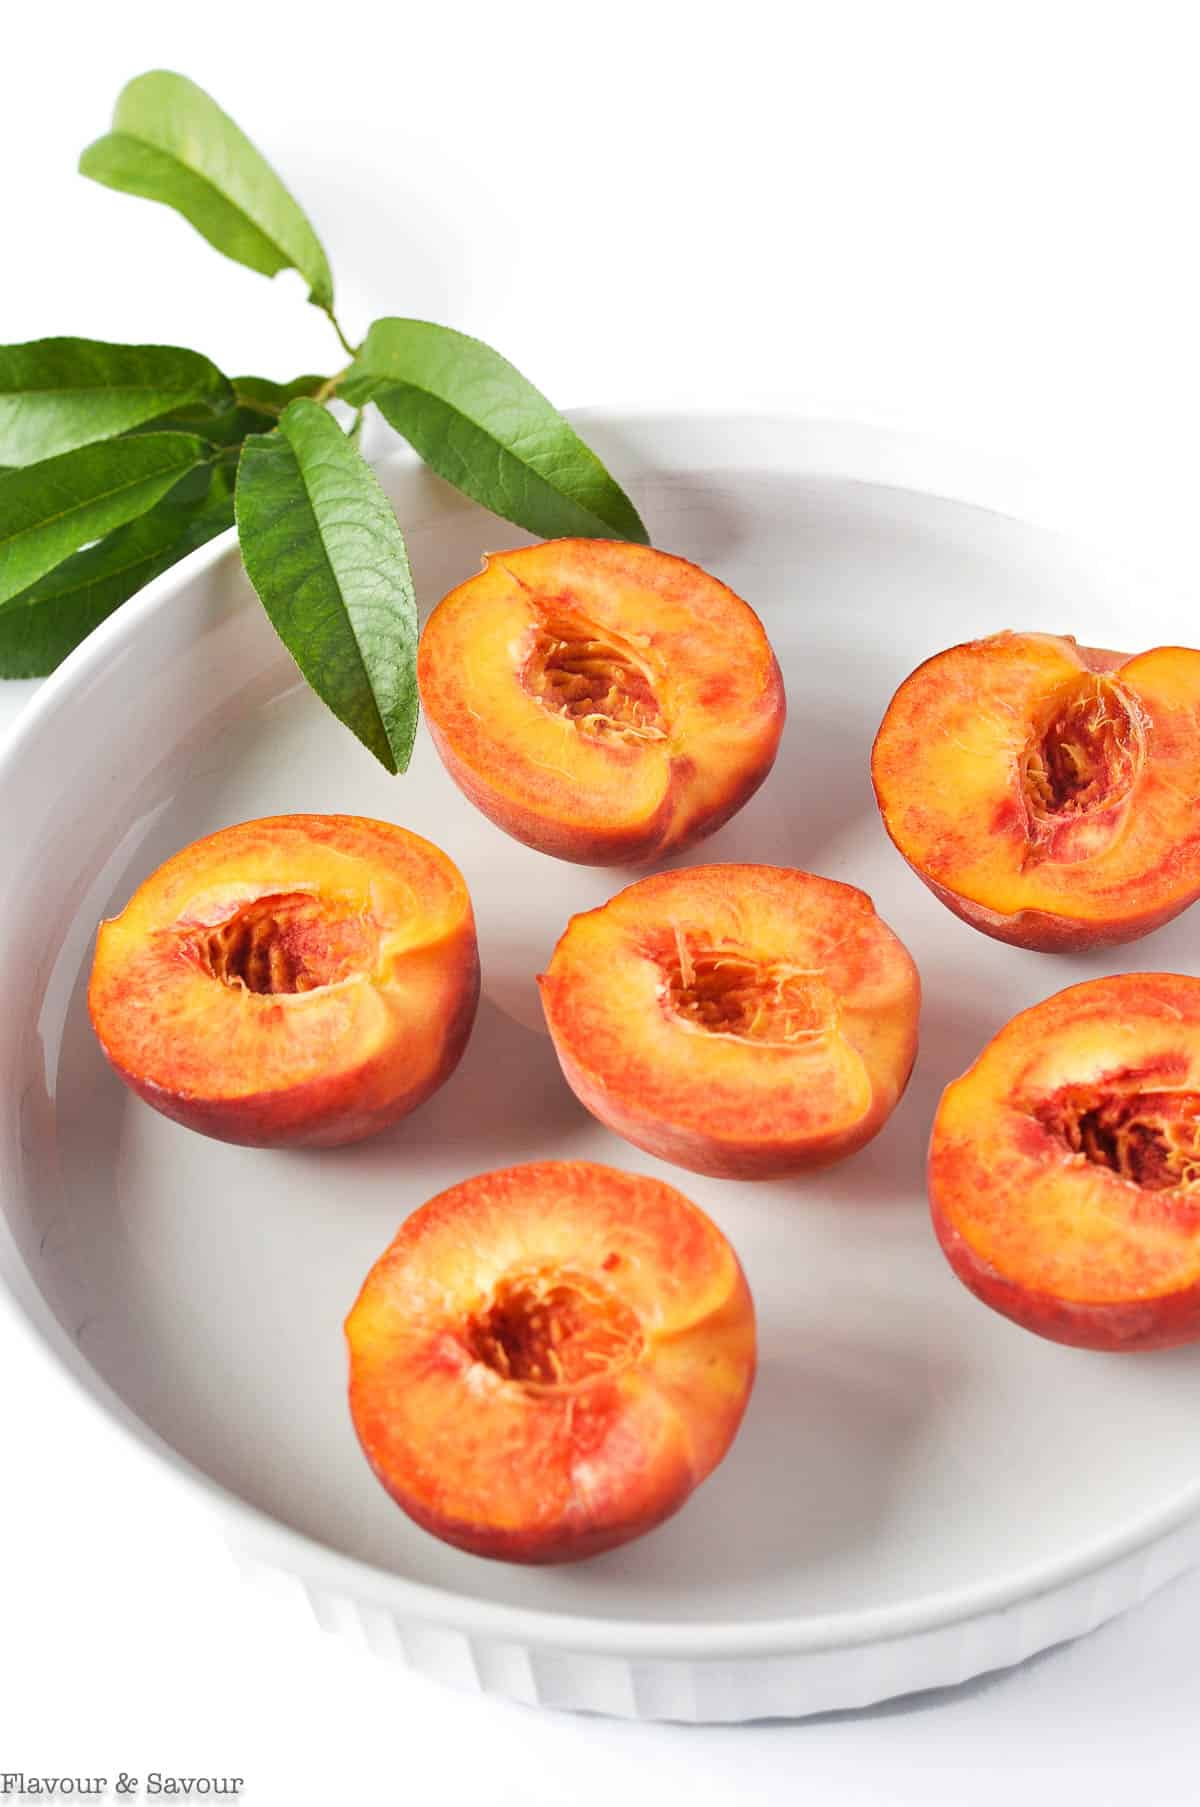 Peach halves in a white shallow dish with peach leaves